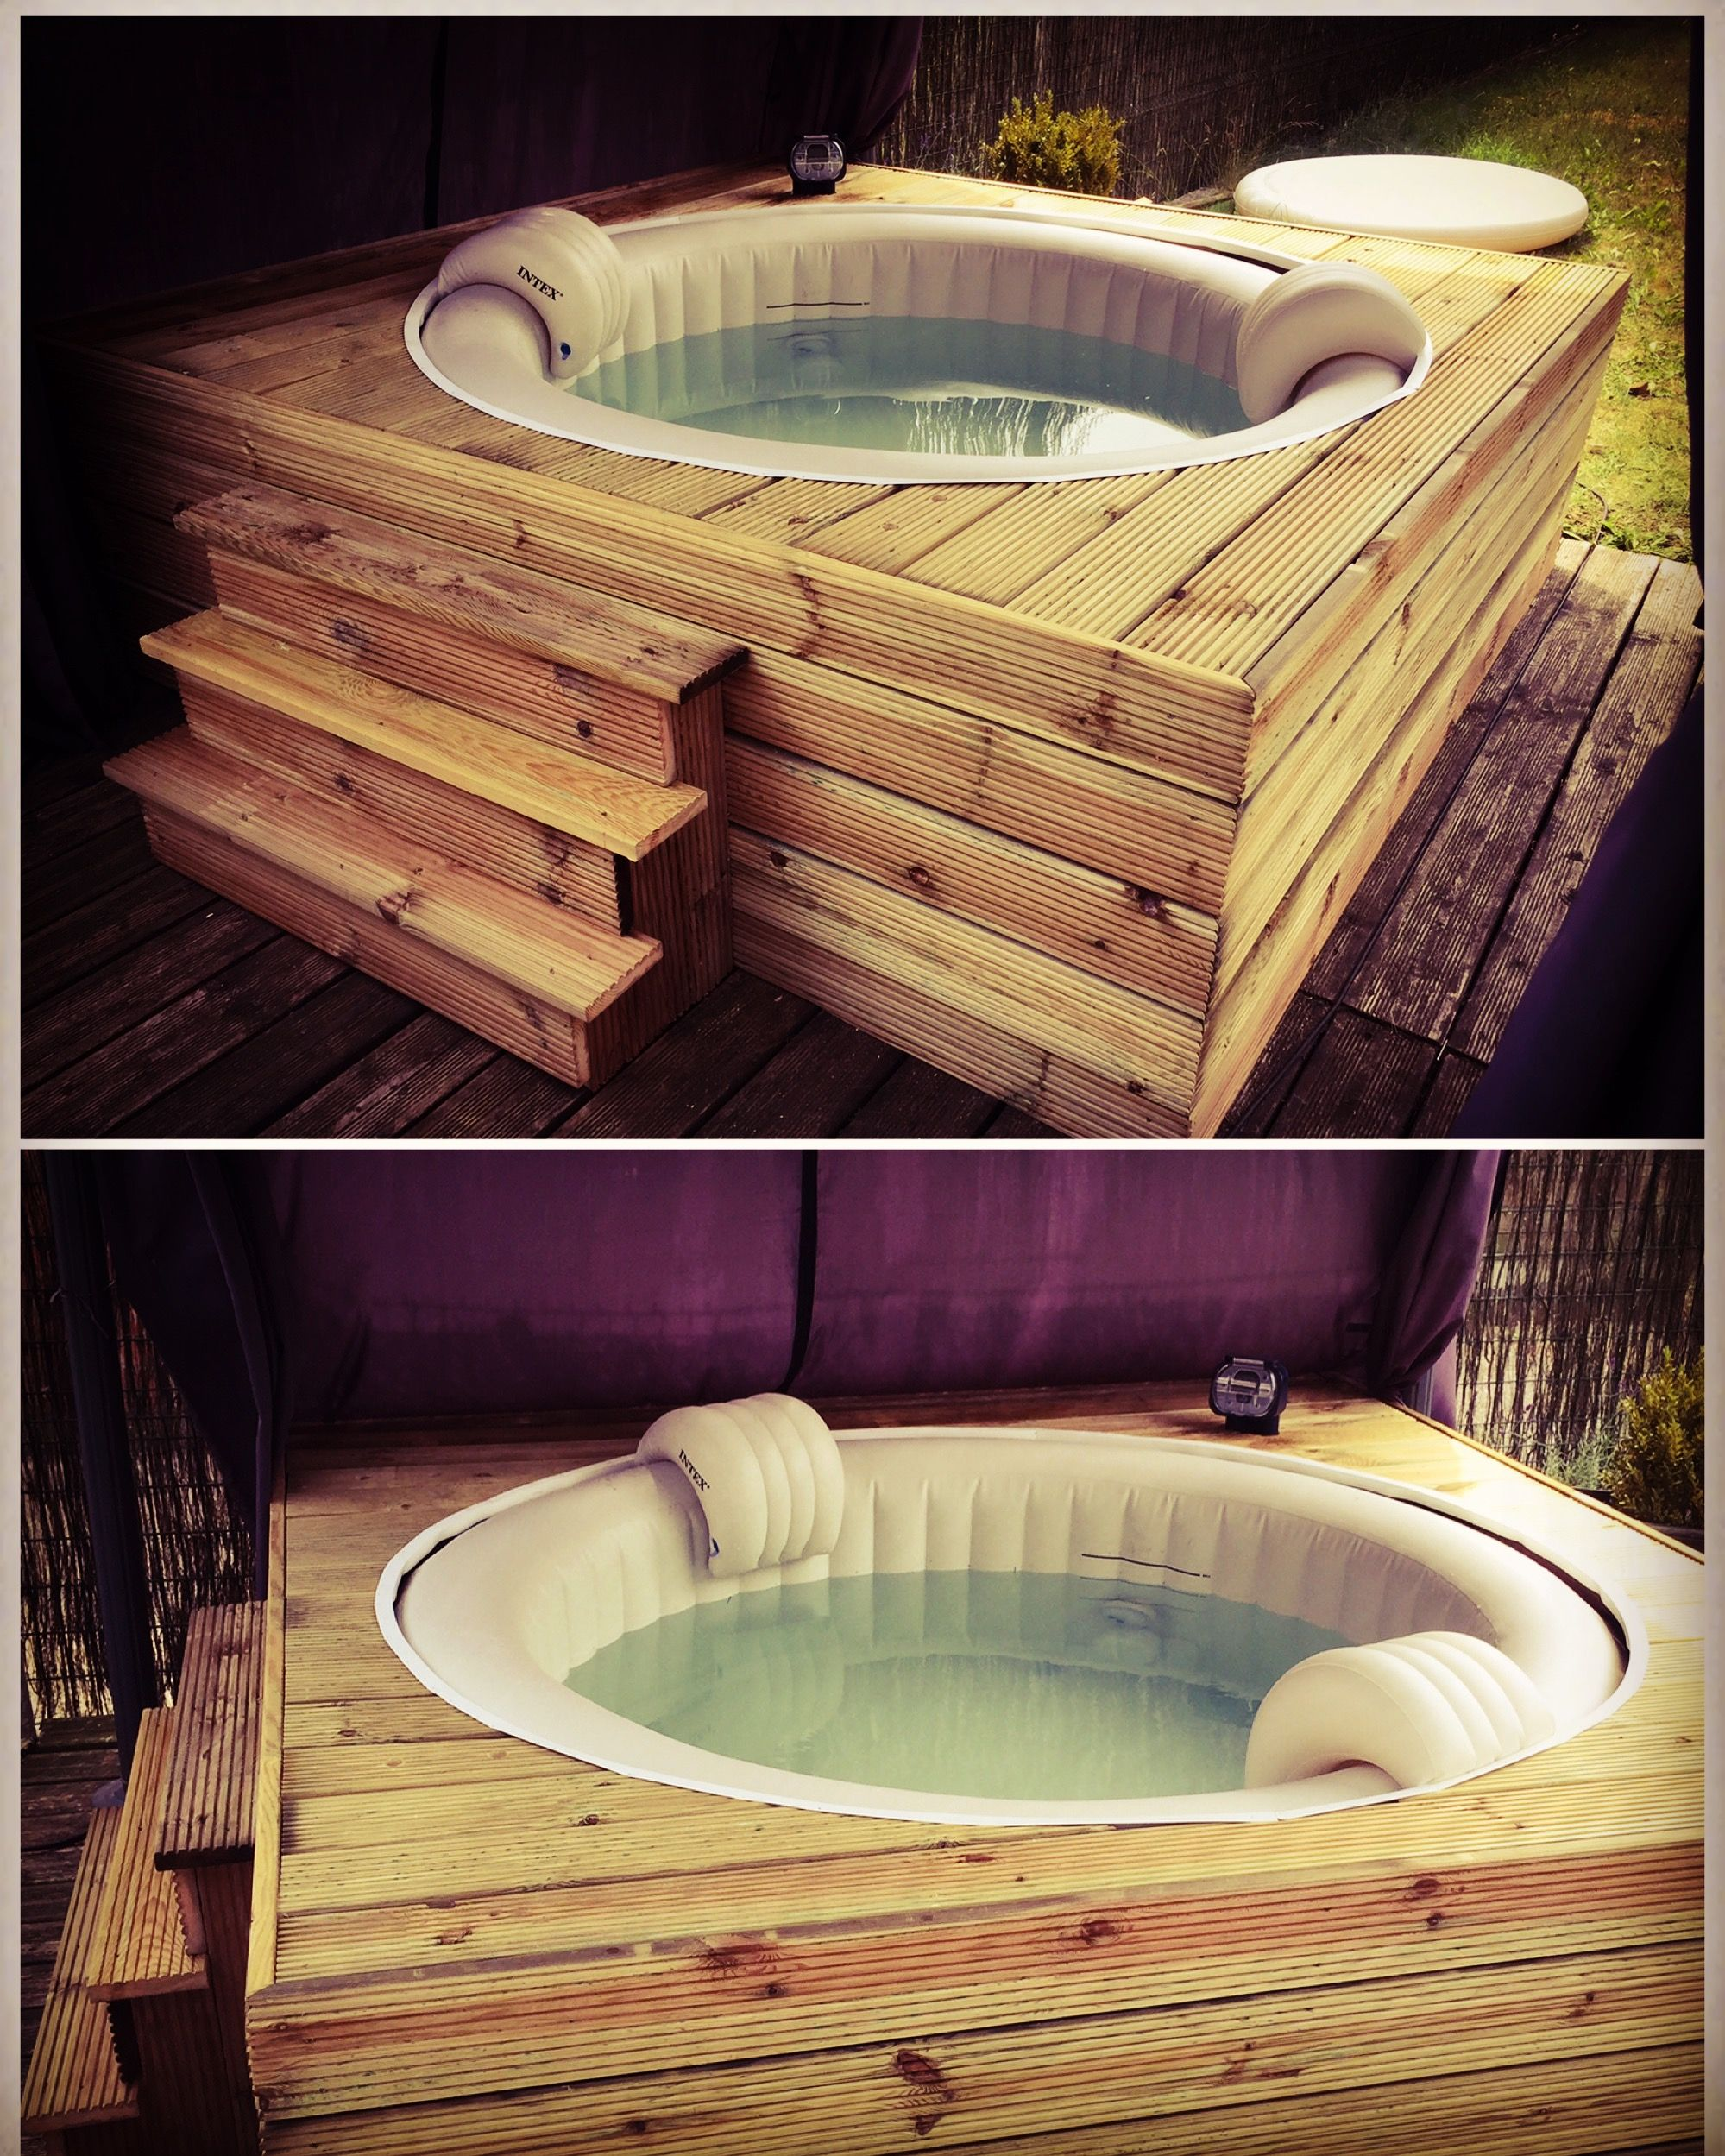 Spa 6 Places Exterieur Habillage Jacuzzi Gonflable Intex Fabrication D Un Habillage En